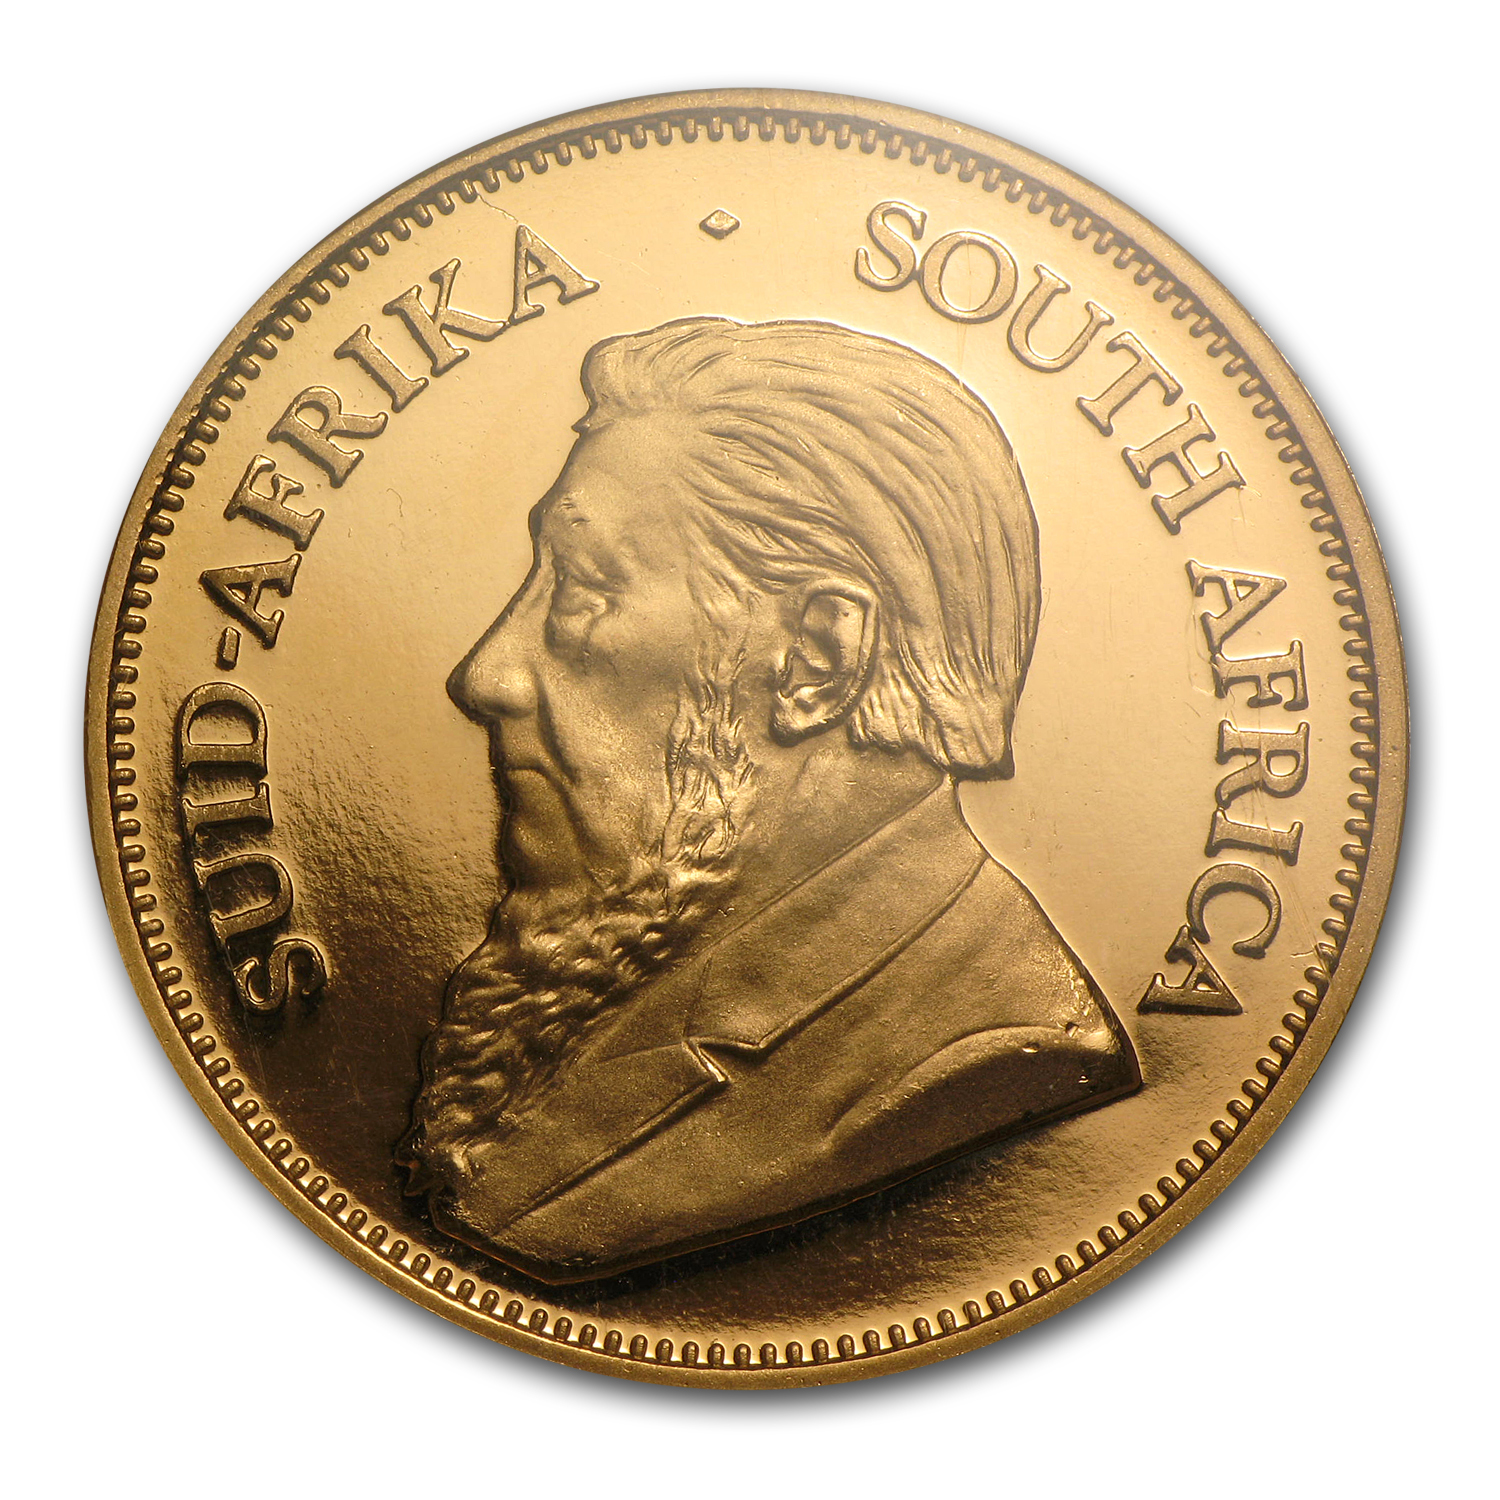 2001 South Africa 1 oz Gold Krugerrand PF-68 NGC (CW Privy)